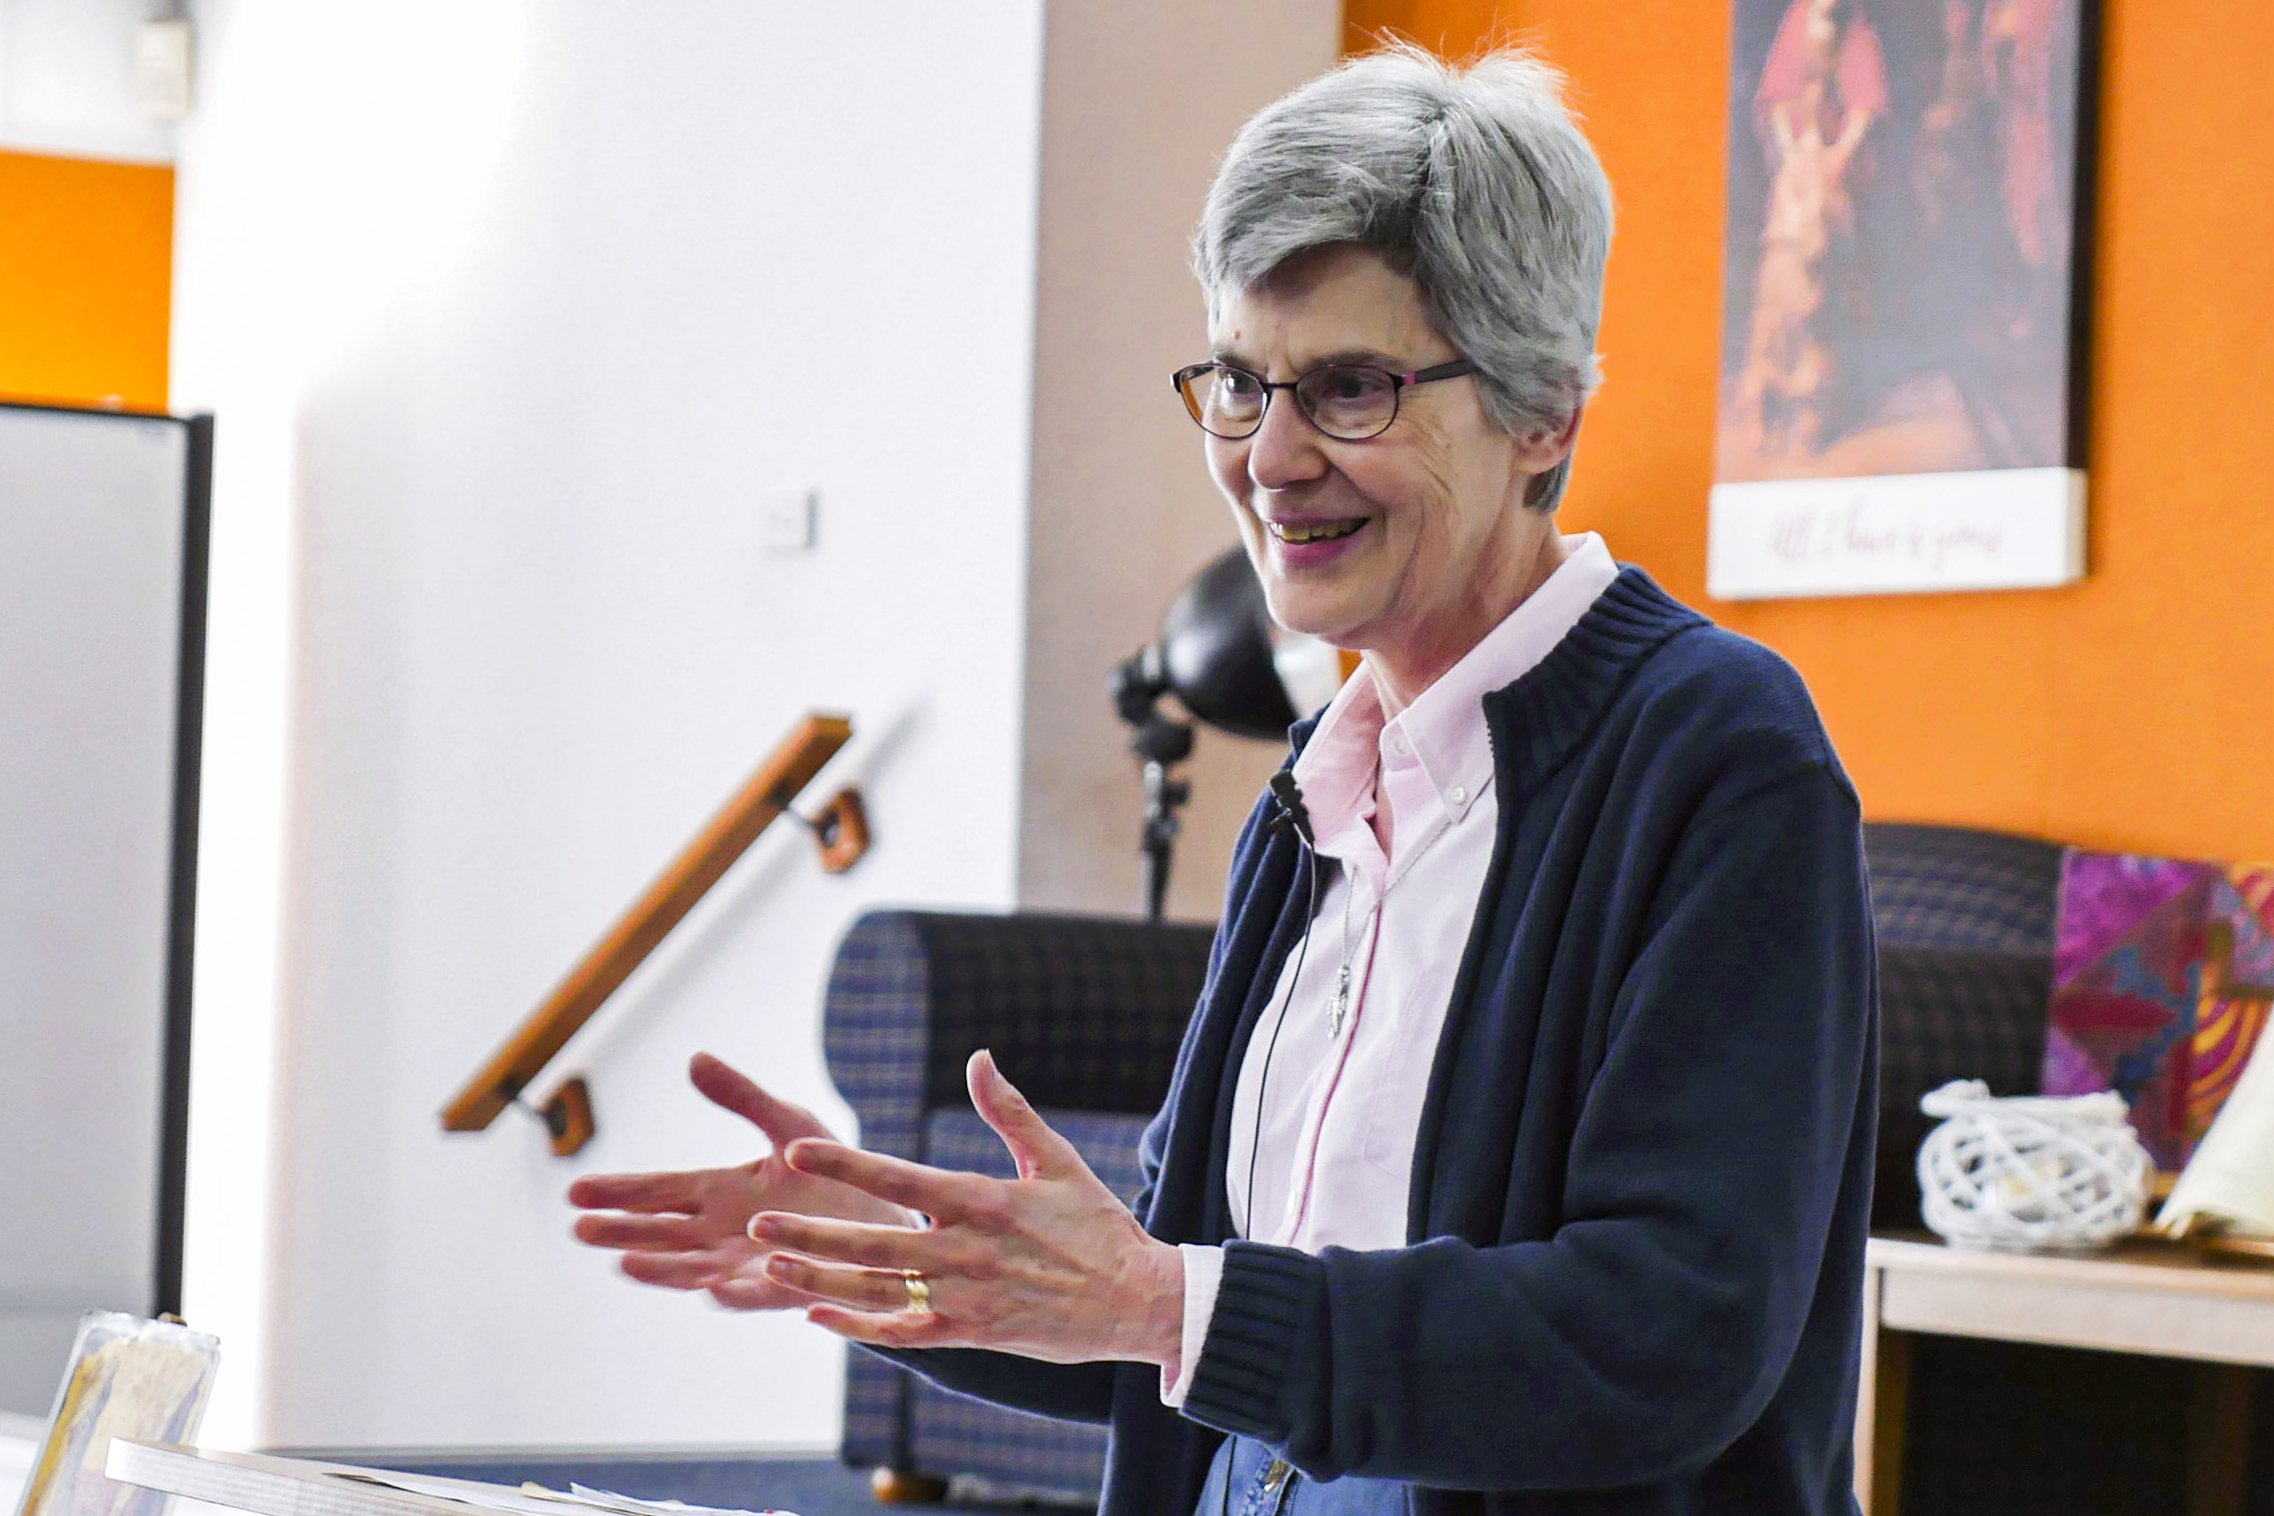 Dr Bonnie Thurston, from Western Virginia in the United States of America, was ordained by the Episcopal Church in 1984 and has served as co-pastor, pastor, or interim of five churches and twice in overseas ministry. Photo: Archives.